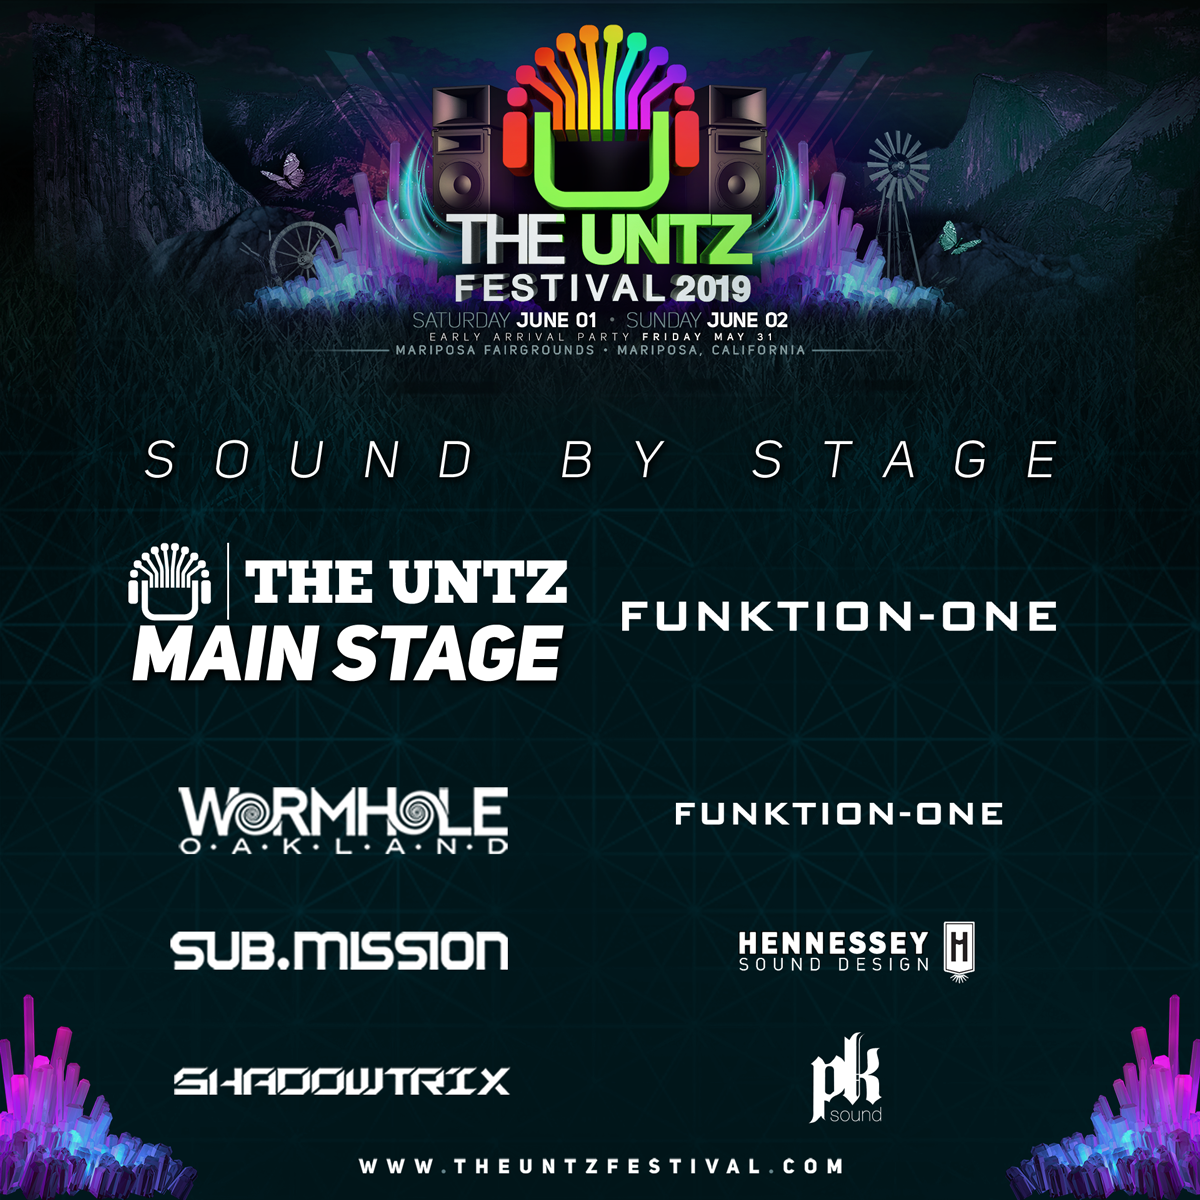 The Untz Festival 2019 sub.mission